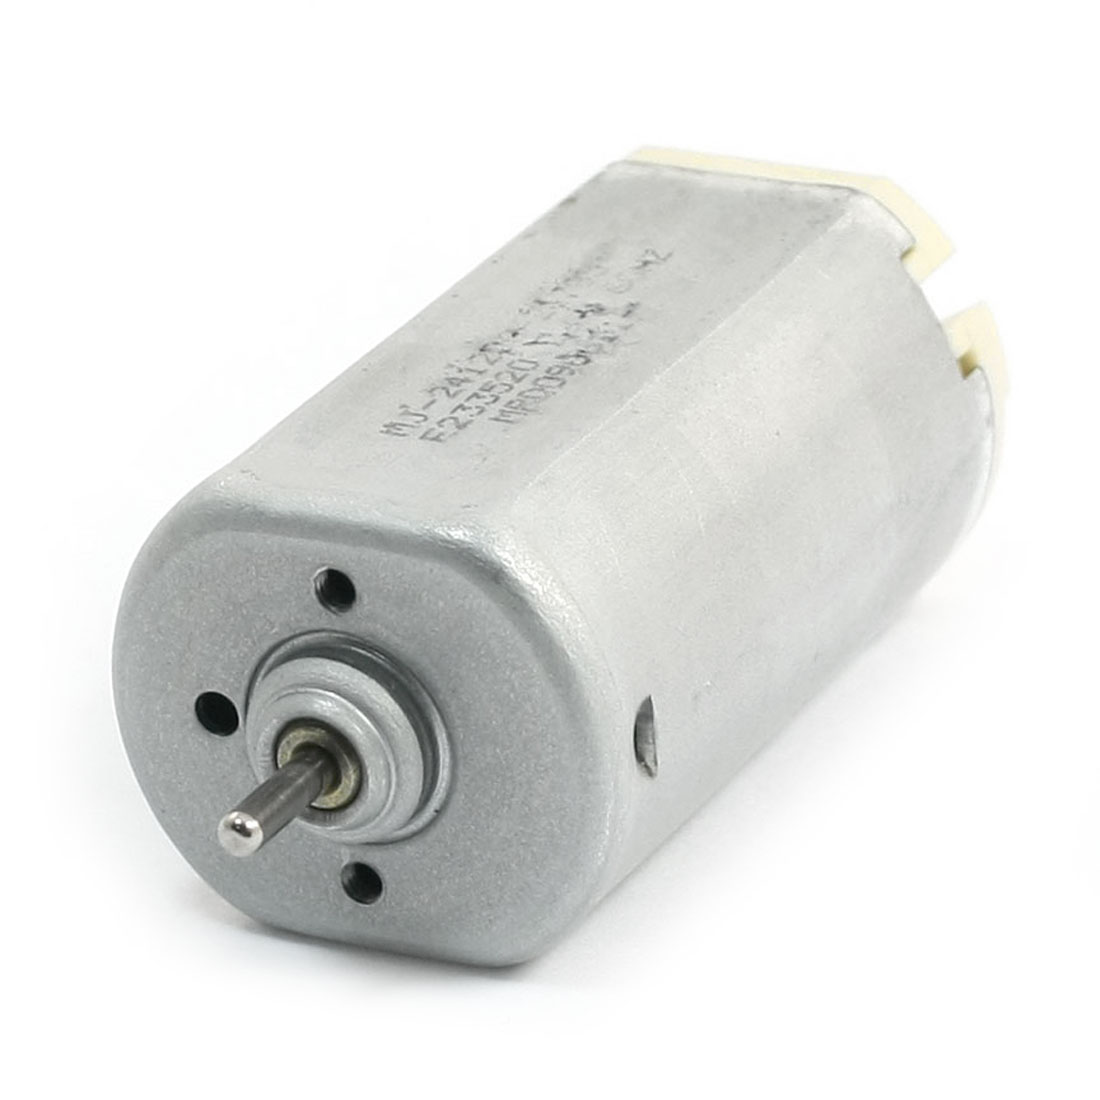 DC-12V-6000-R-MIN-2mm-Shaft-Speed-Reduce-Car-Door-Lock-Geared-Motor